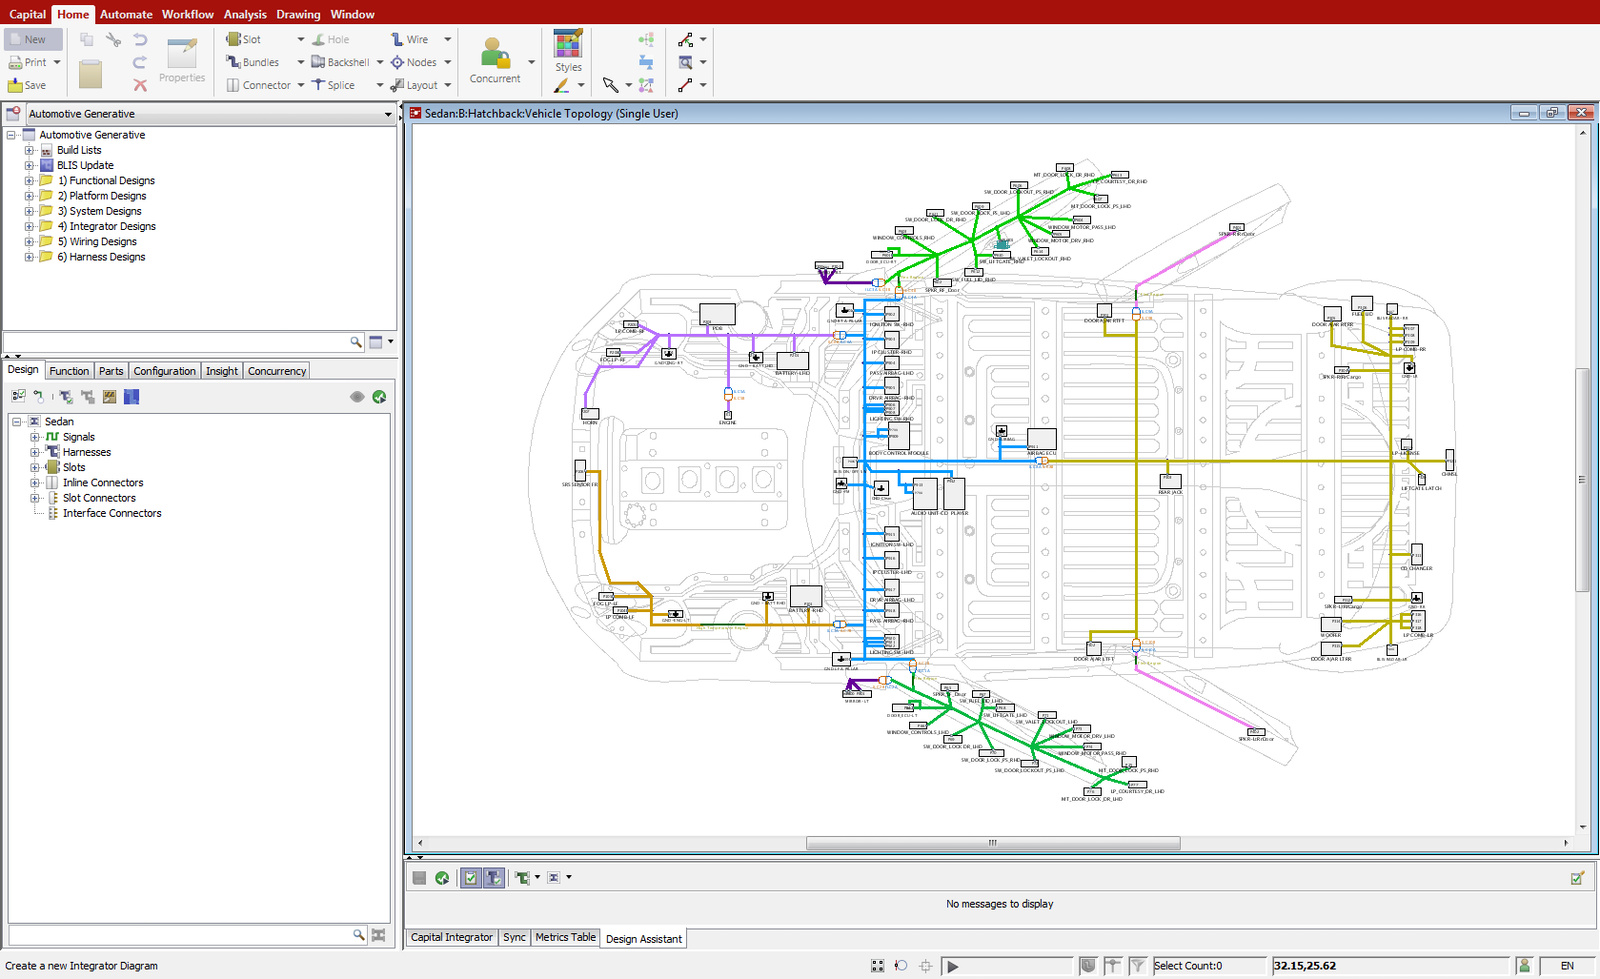 Capital IntegratorElectrical Design Automation Mentor Graphics - Electrical and wire harness design